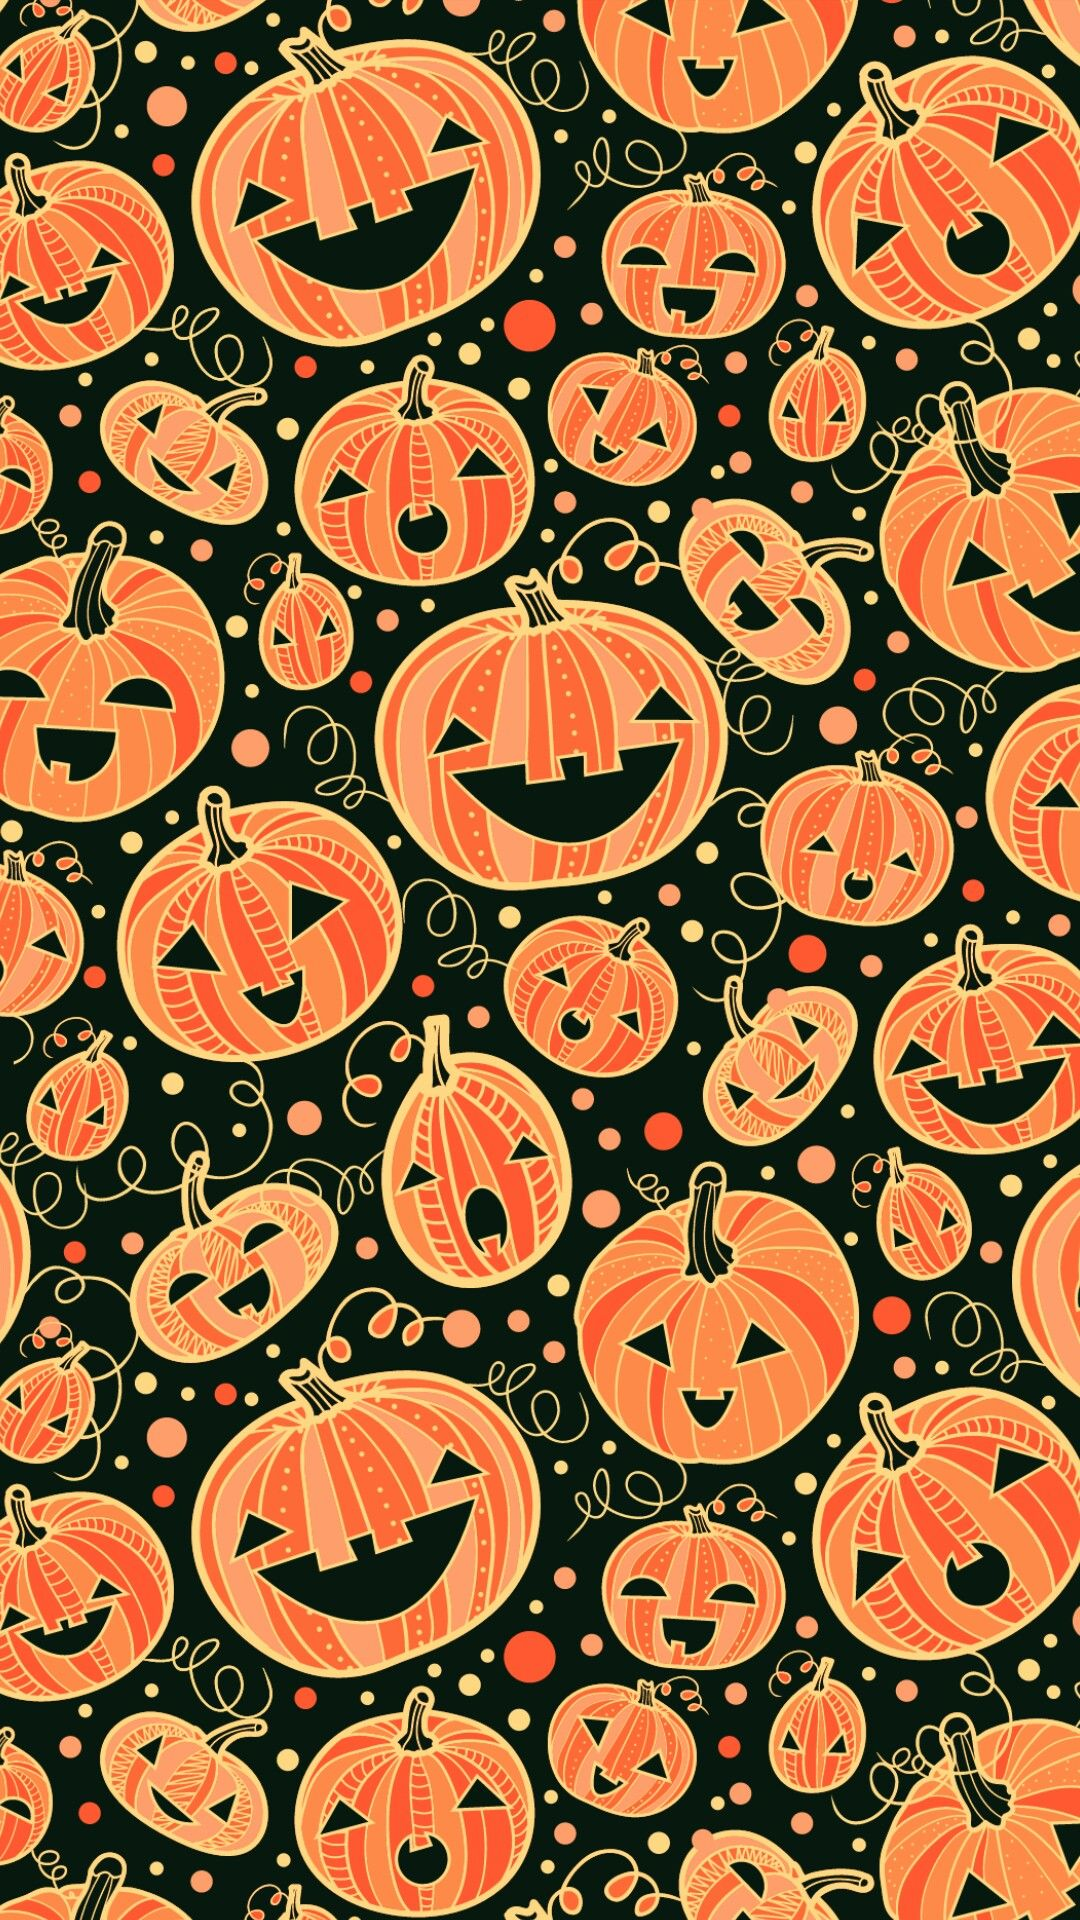 Pin By Laura Alejandra On Fondos Wallpaper Halloween Wallpaper Iphone Iphone Wallpaper Fall Halloween Backgrounds